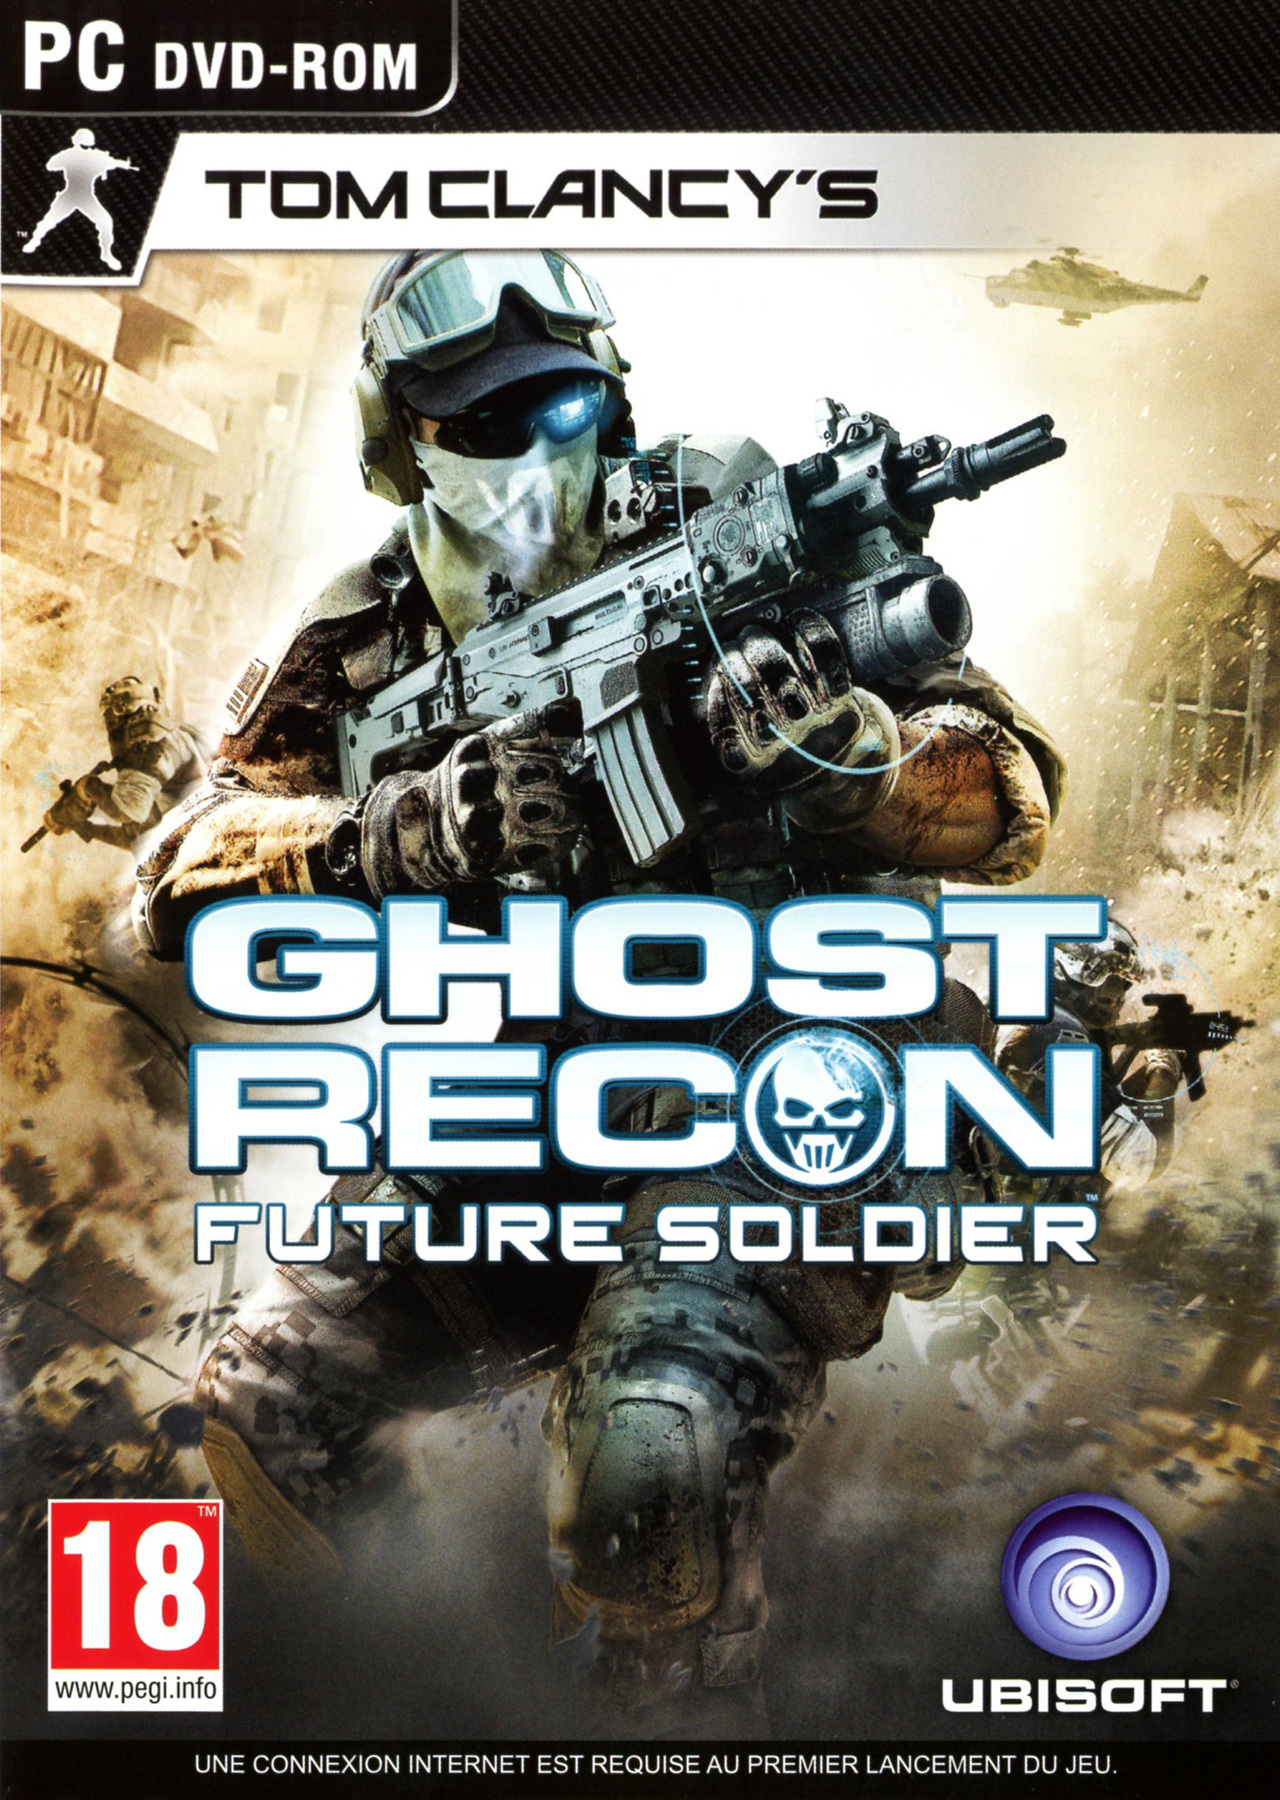 [DF] Ghost Recon : Future Soldier [Jeux/PC]